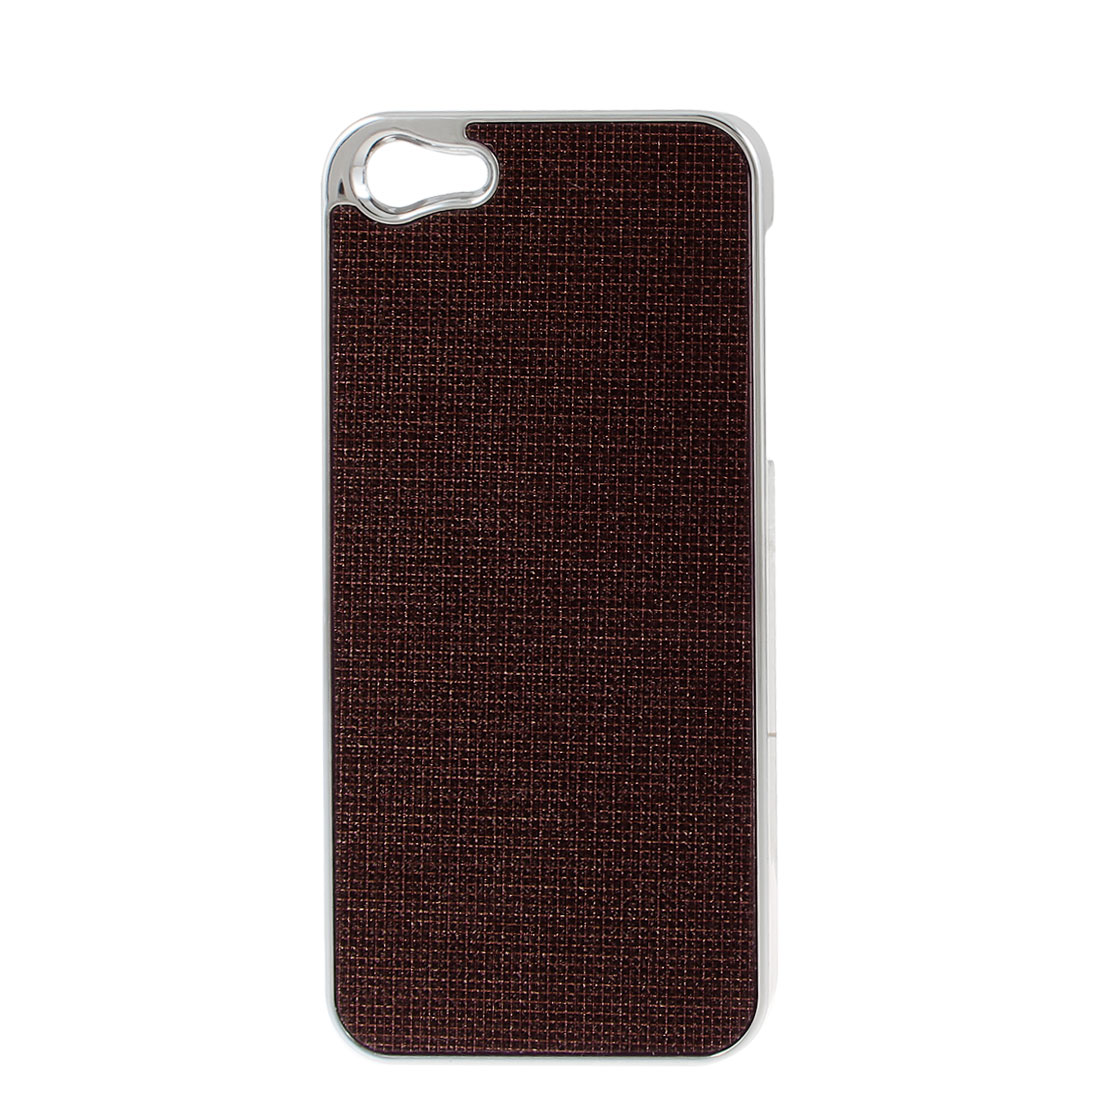 Wine Red Bling Glittery Hard Plastic Back Case Cover for iPhone 5 5G